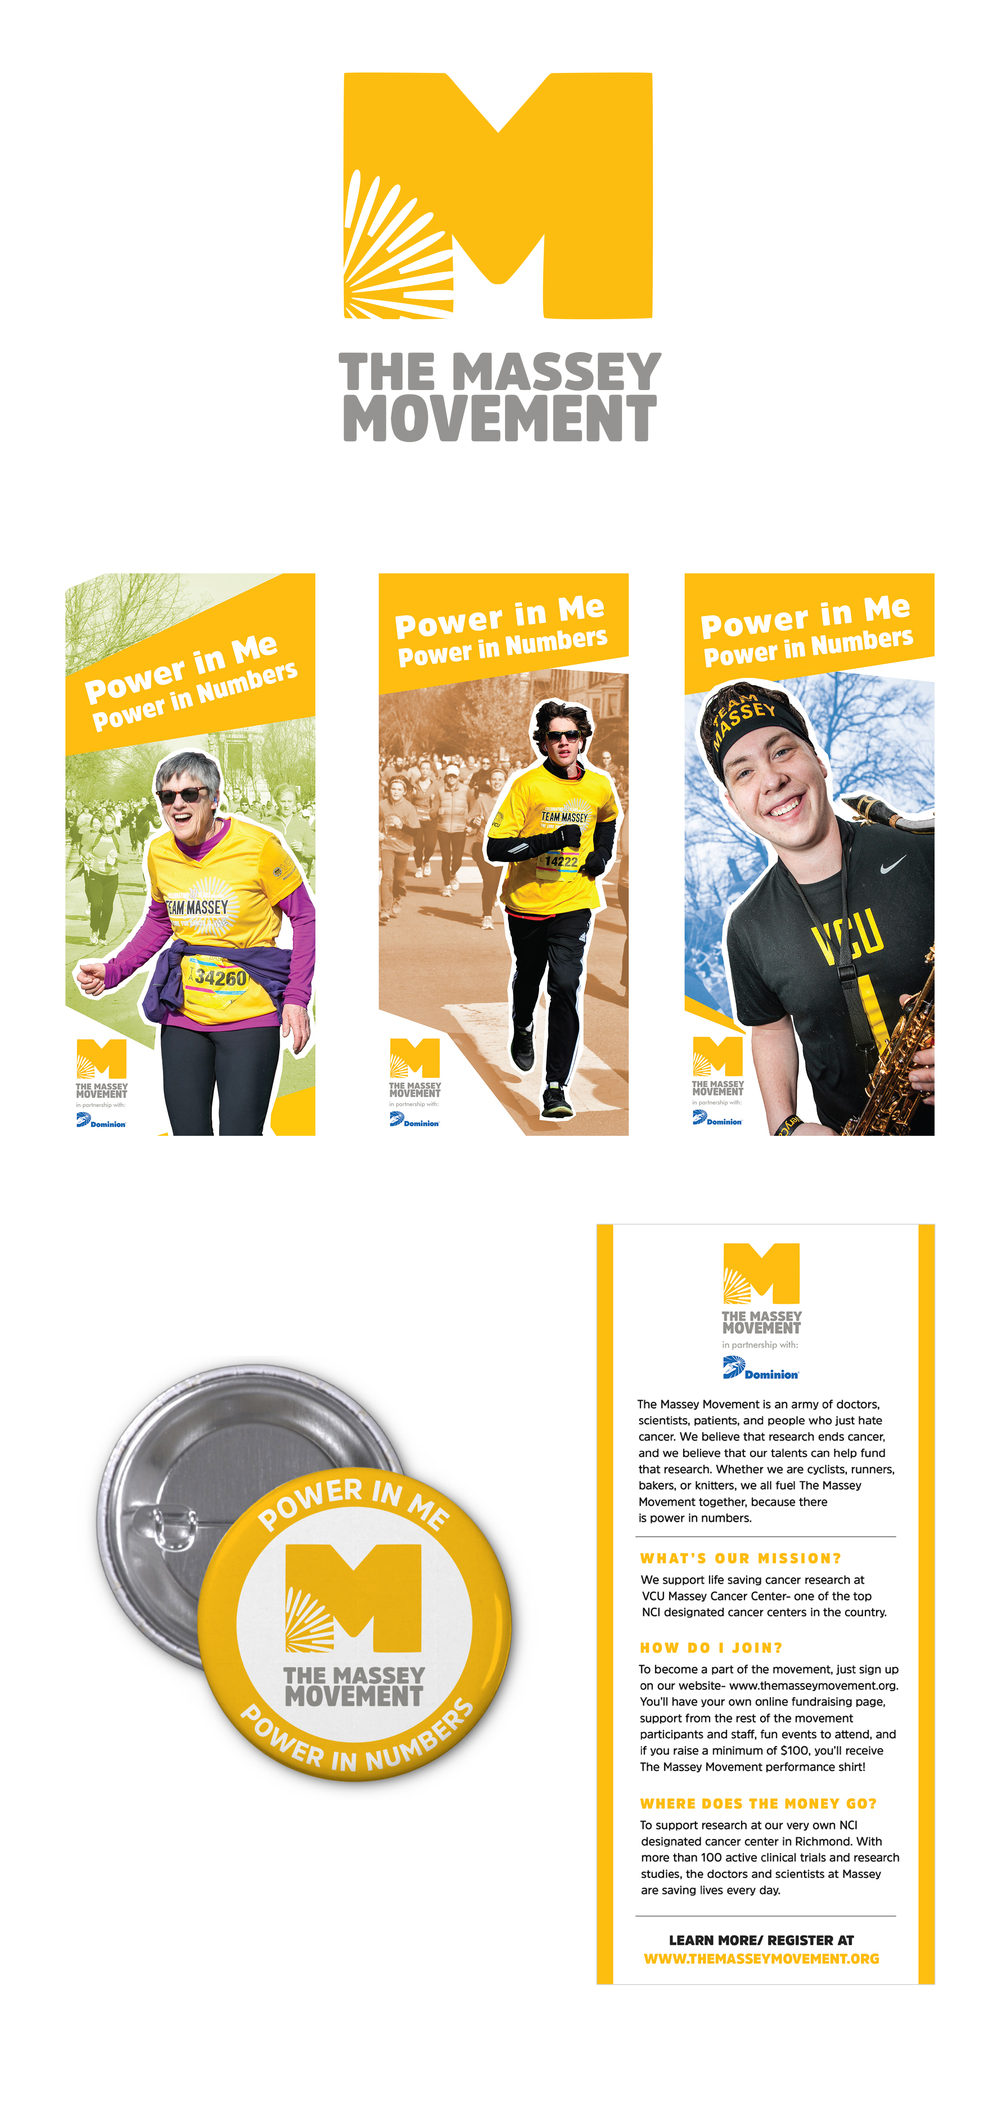 The Massey Movement logo, button, and flyer designs by Anna Andreen